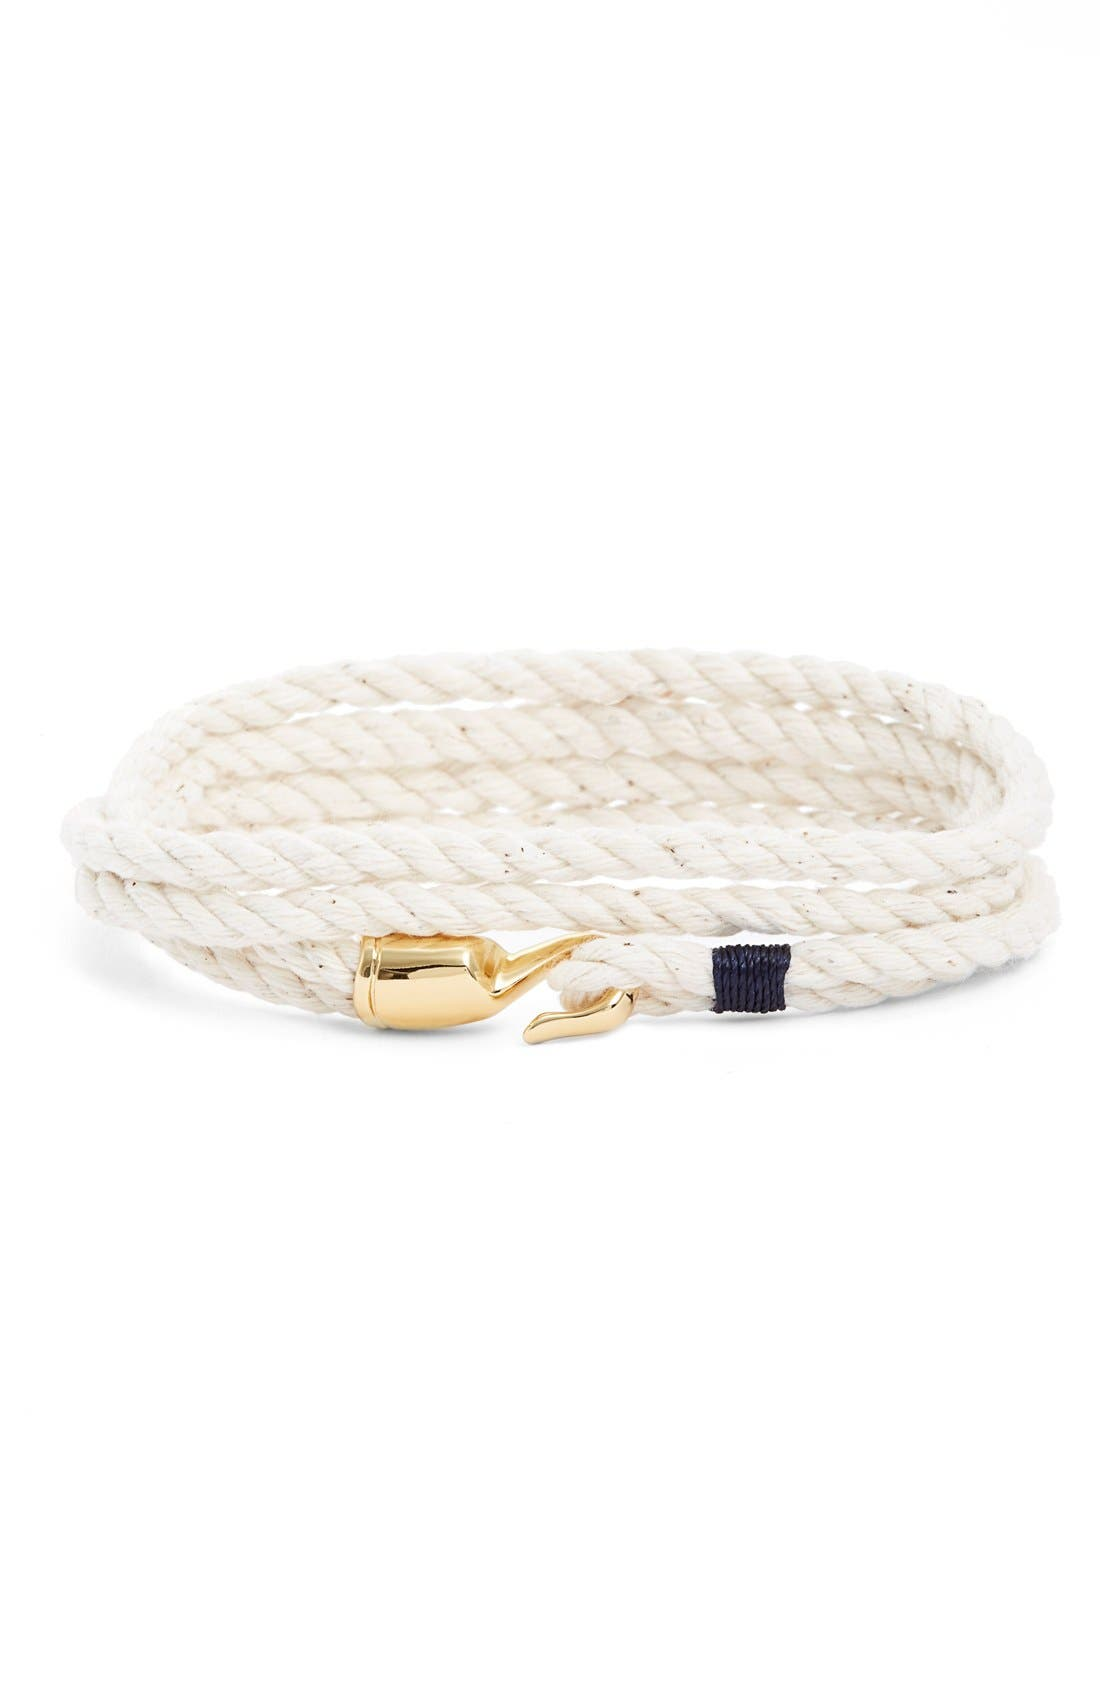 'Trice' Wrap Rope Bracelet,                             Main thumbnail 1, color,                             101